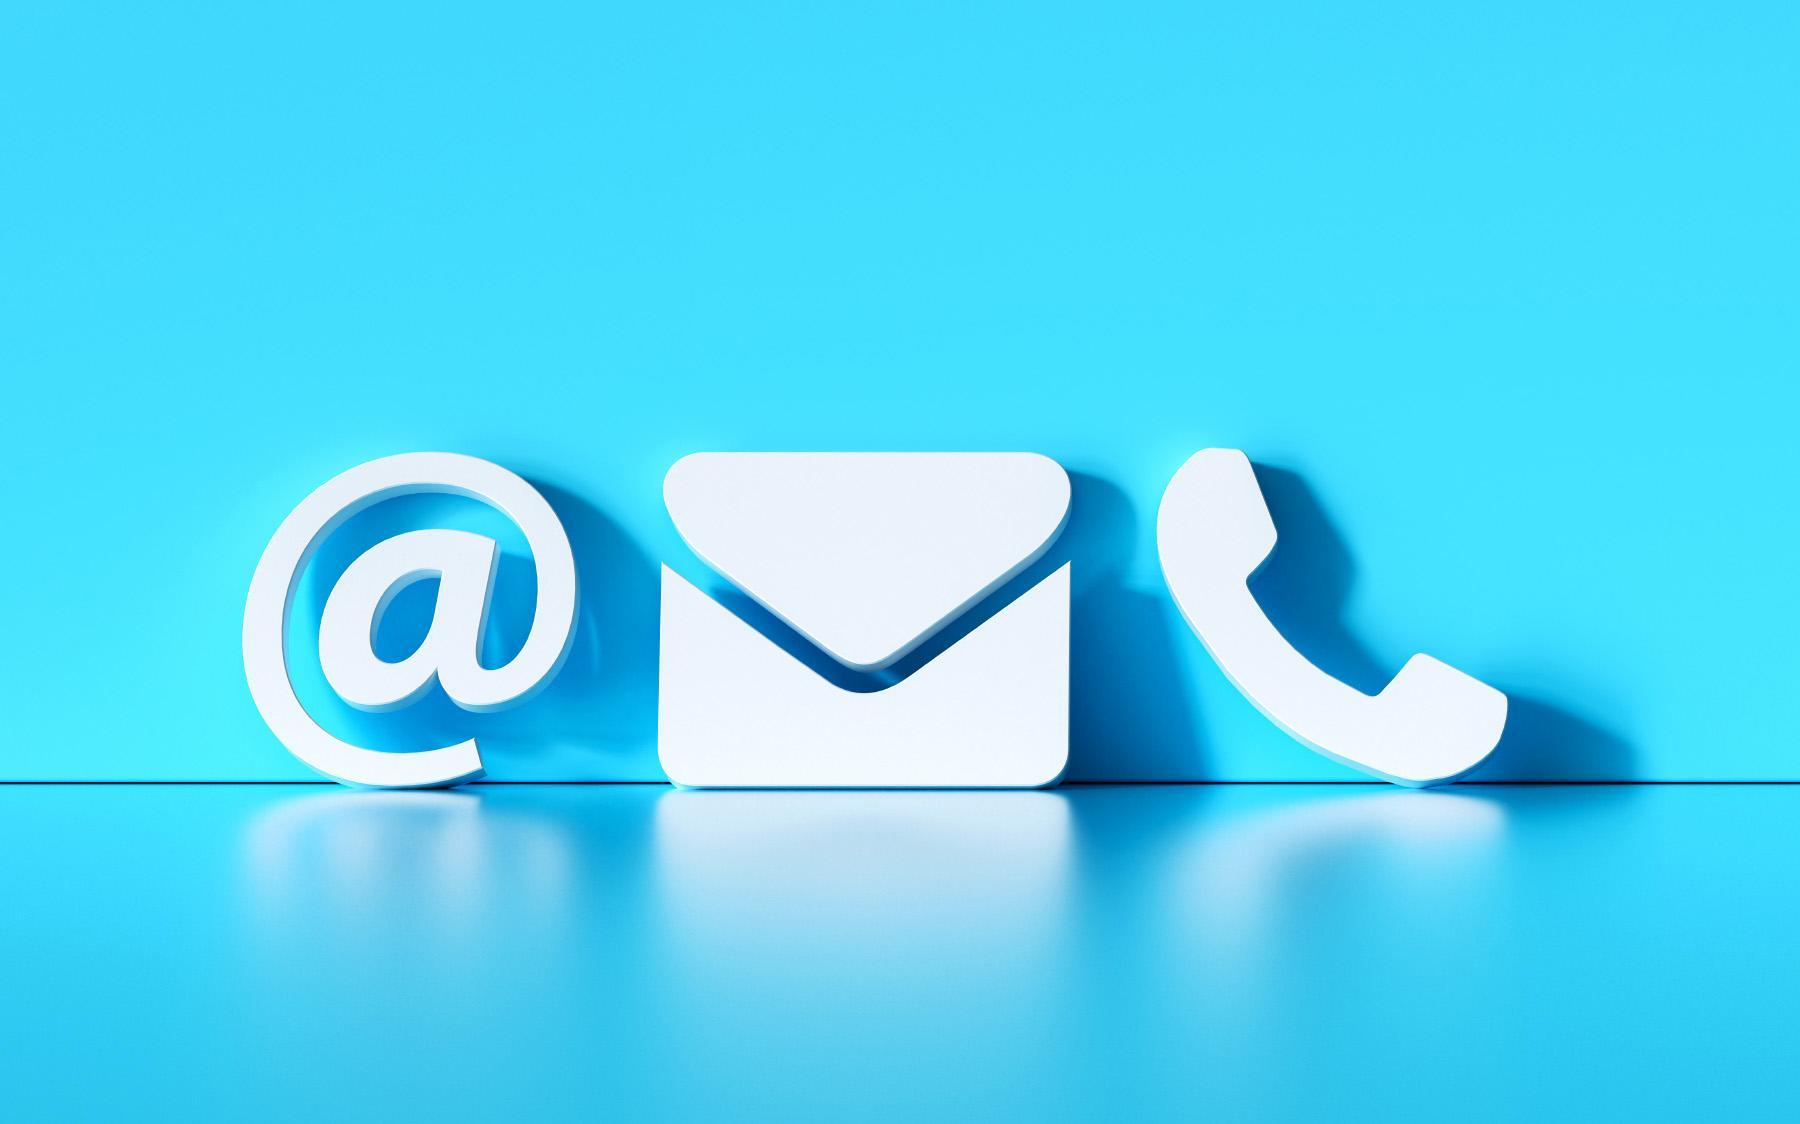 Email, phone, and mail icons set against a blue background